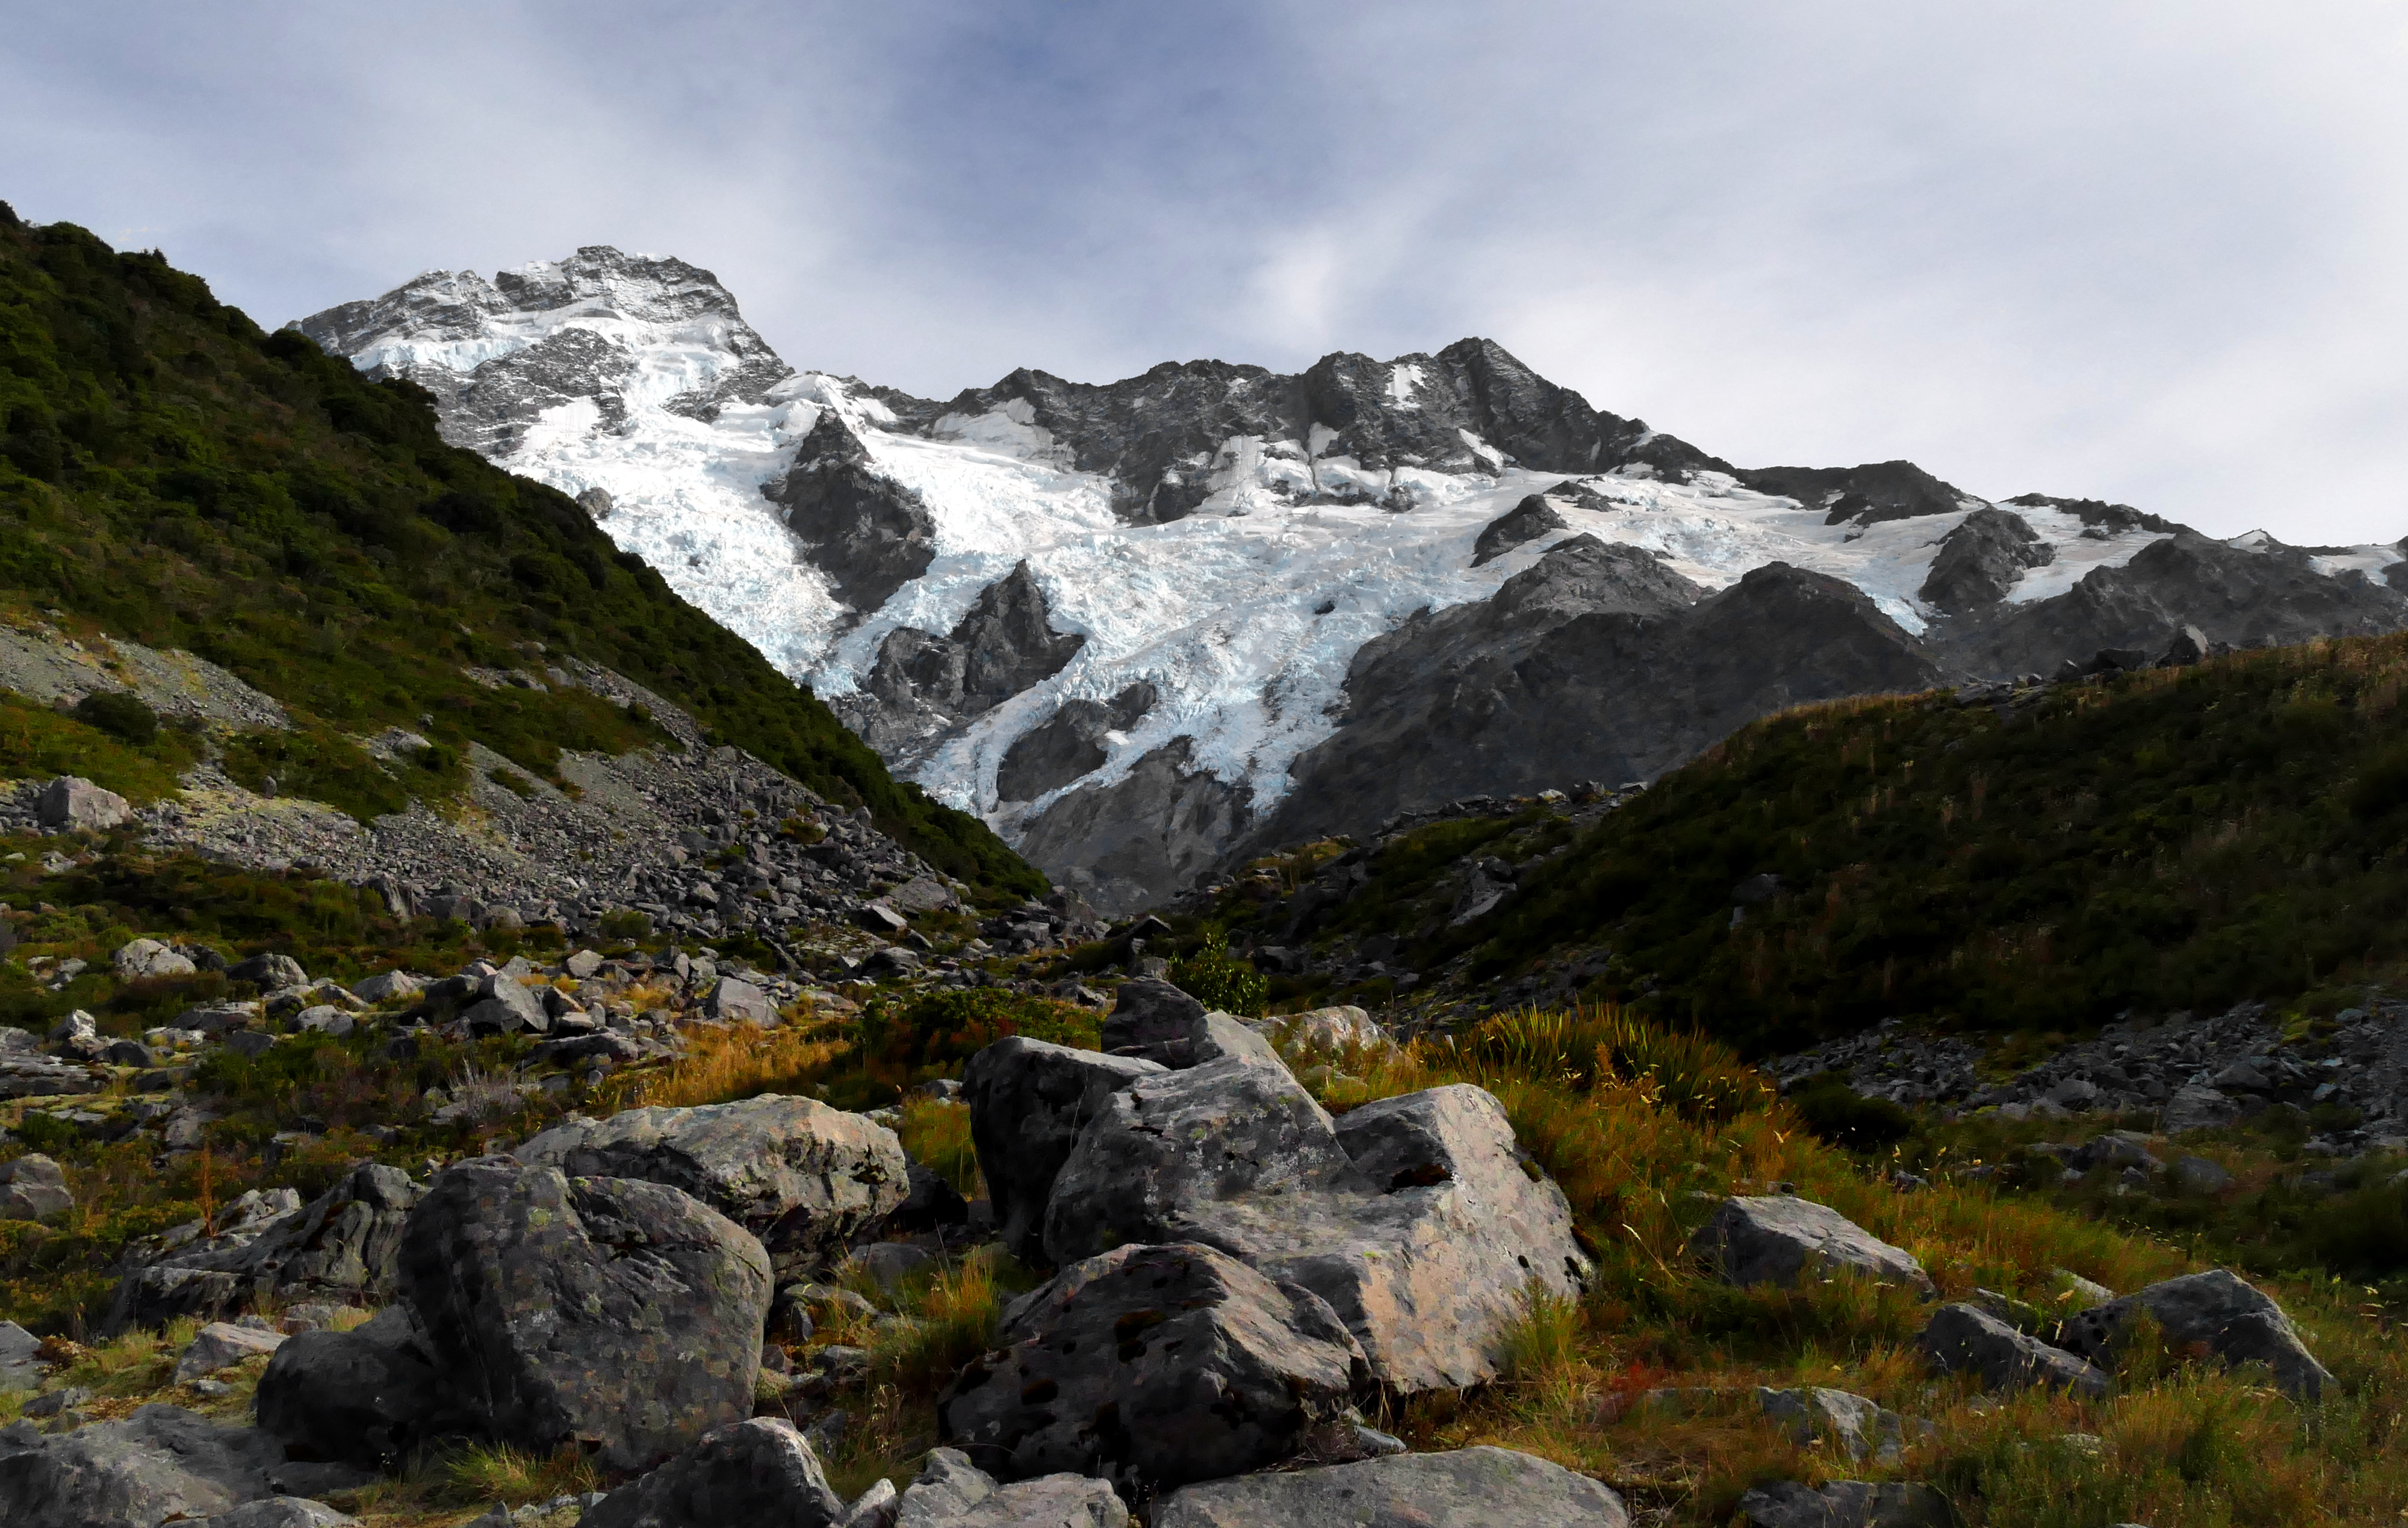 The moorhouse range. mt cook np. nz photo